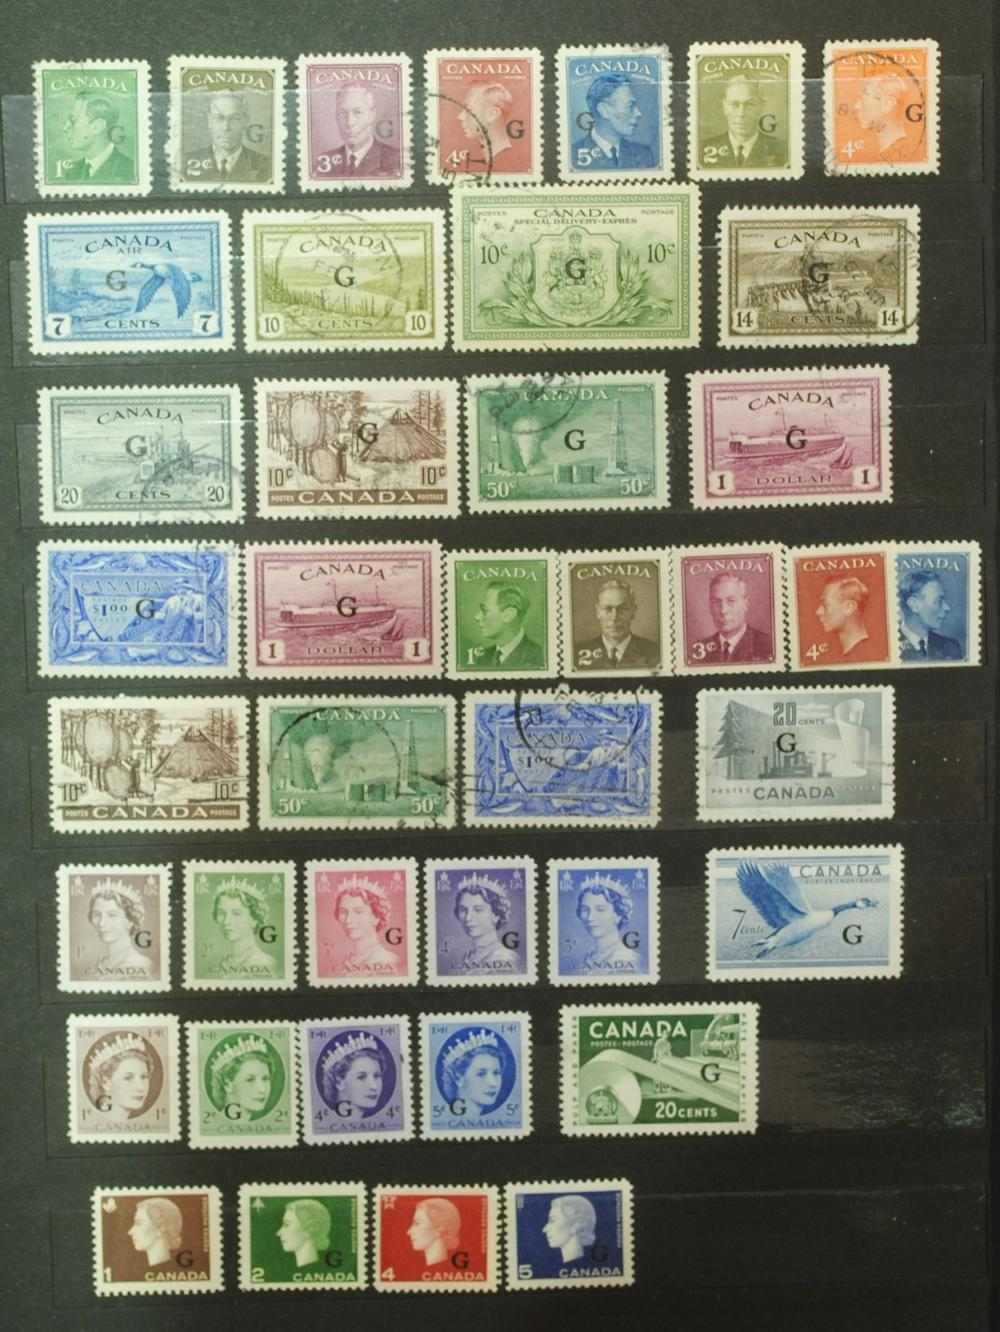 Canada Stamp Collection 1949/1950 (76 Stamps)